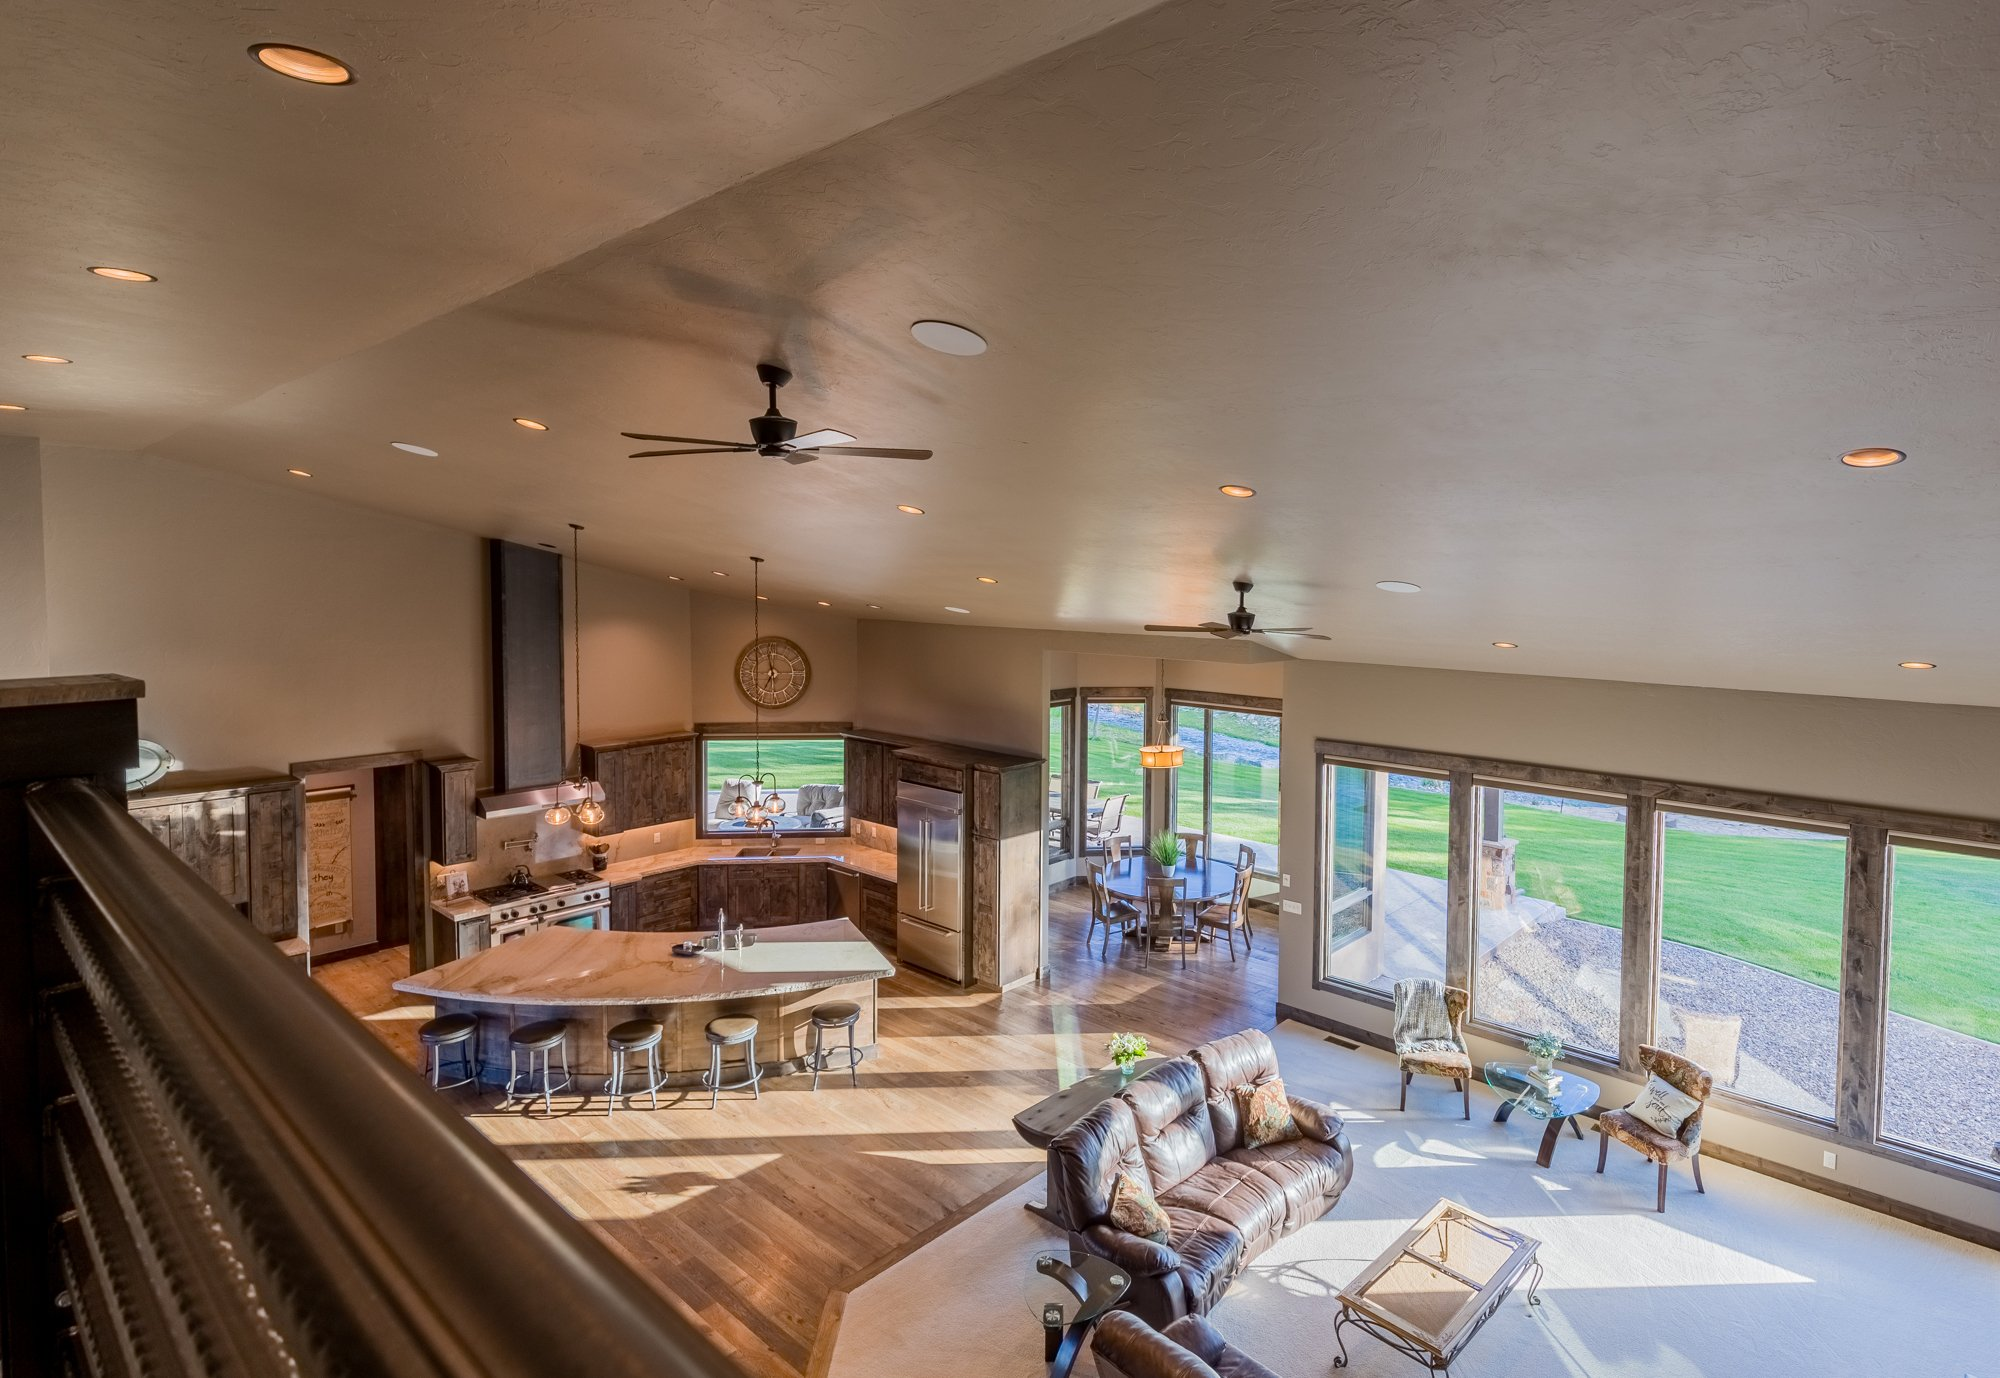 2nd Floor Views - 15067 6140 Ln Montrose, CO 81403 - Atha Team Luxury Real Estate